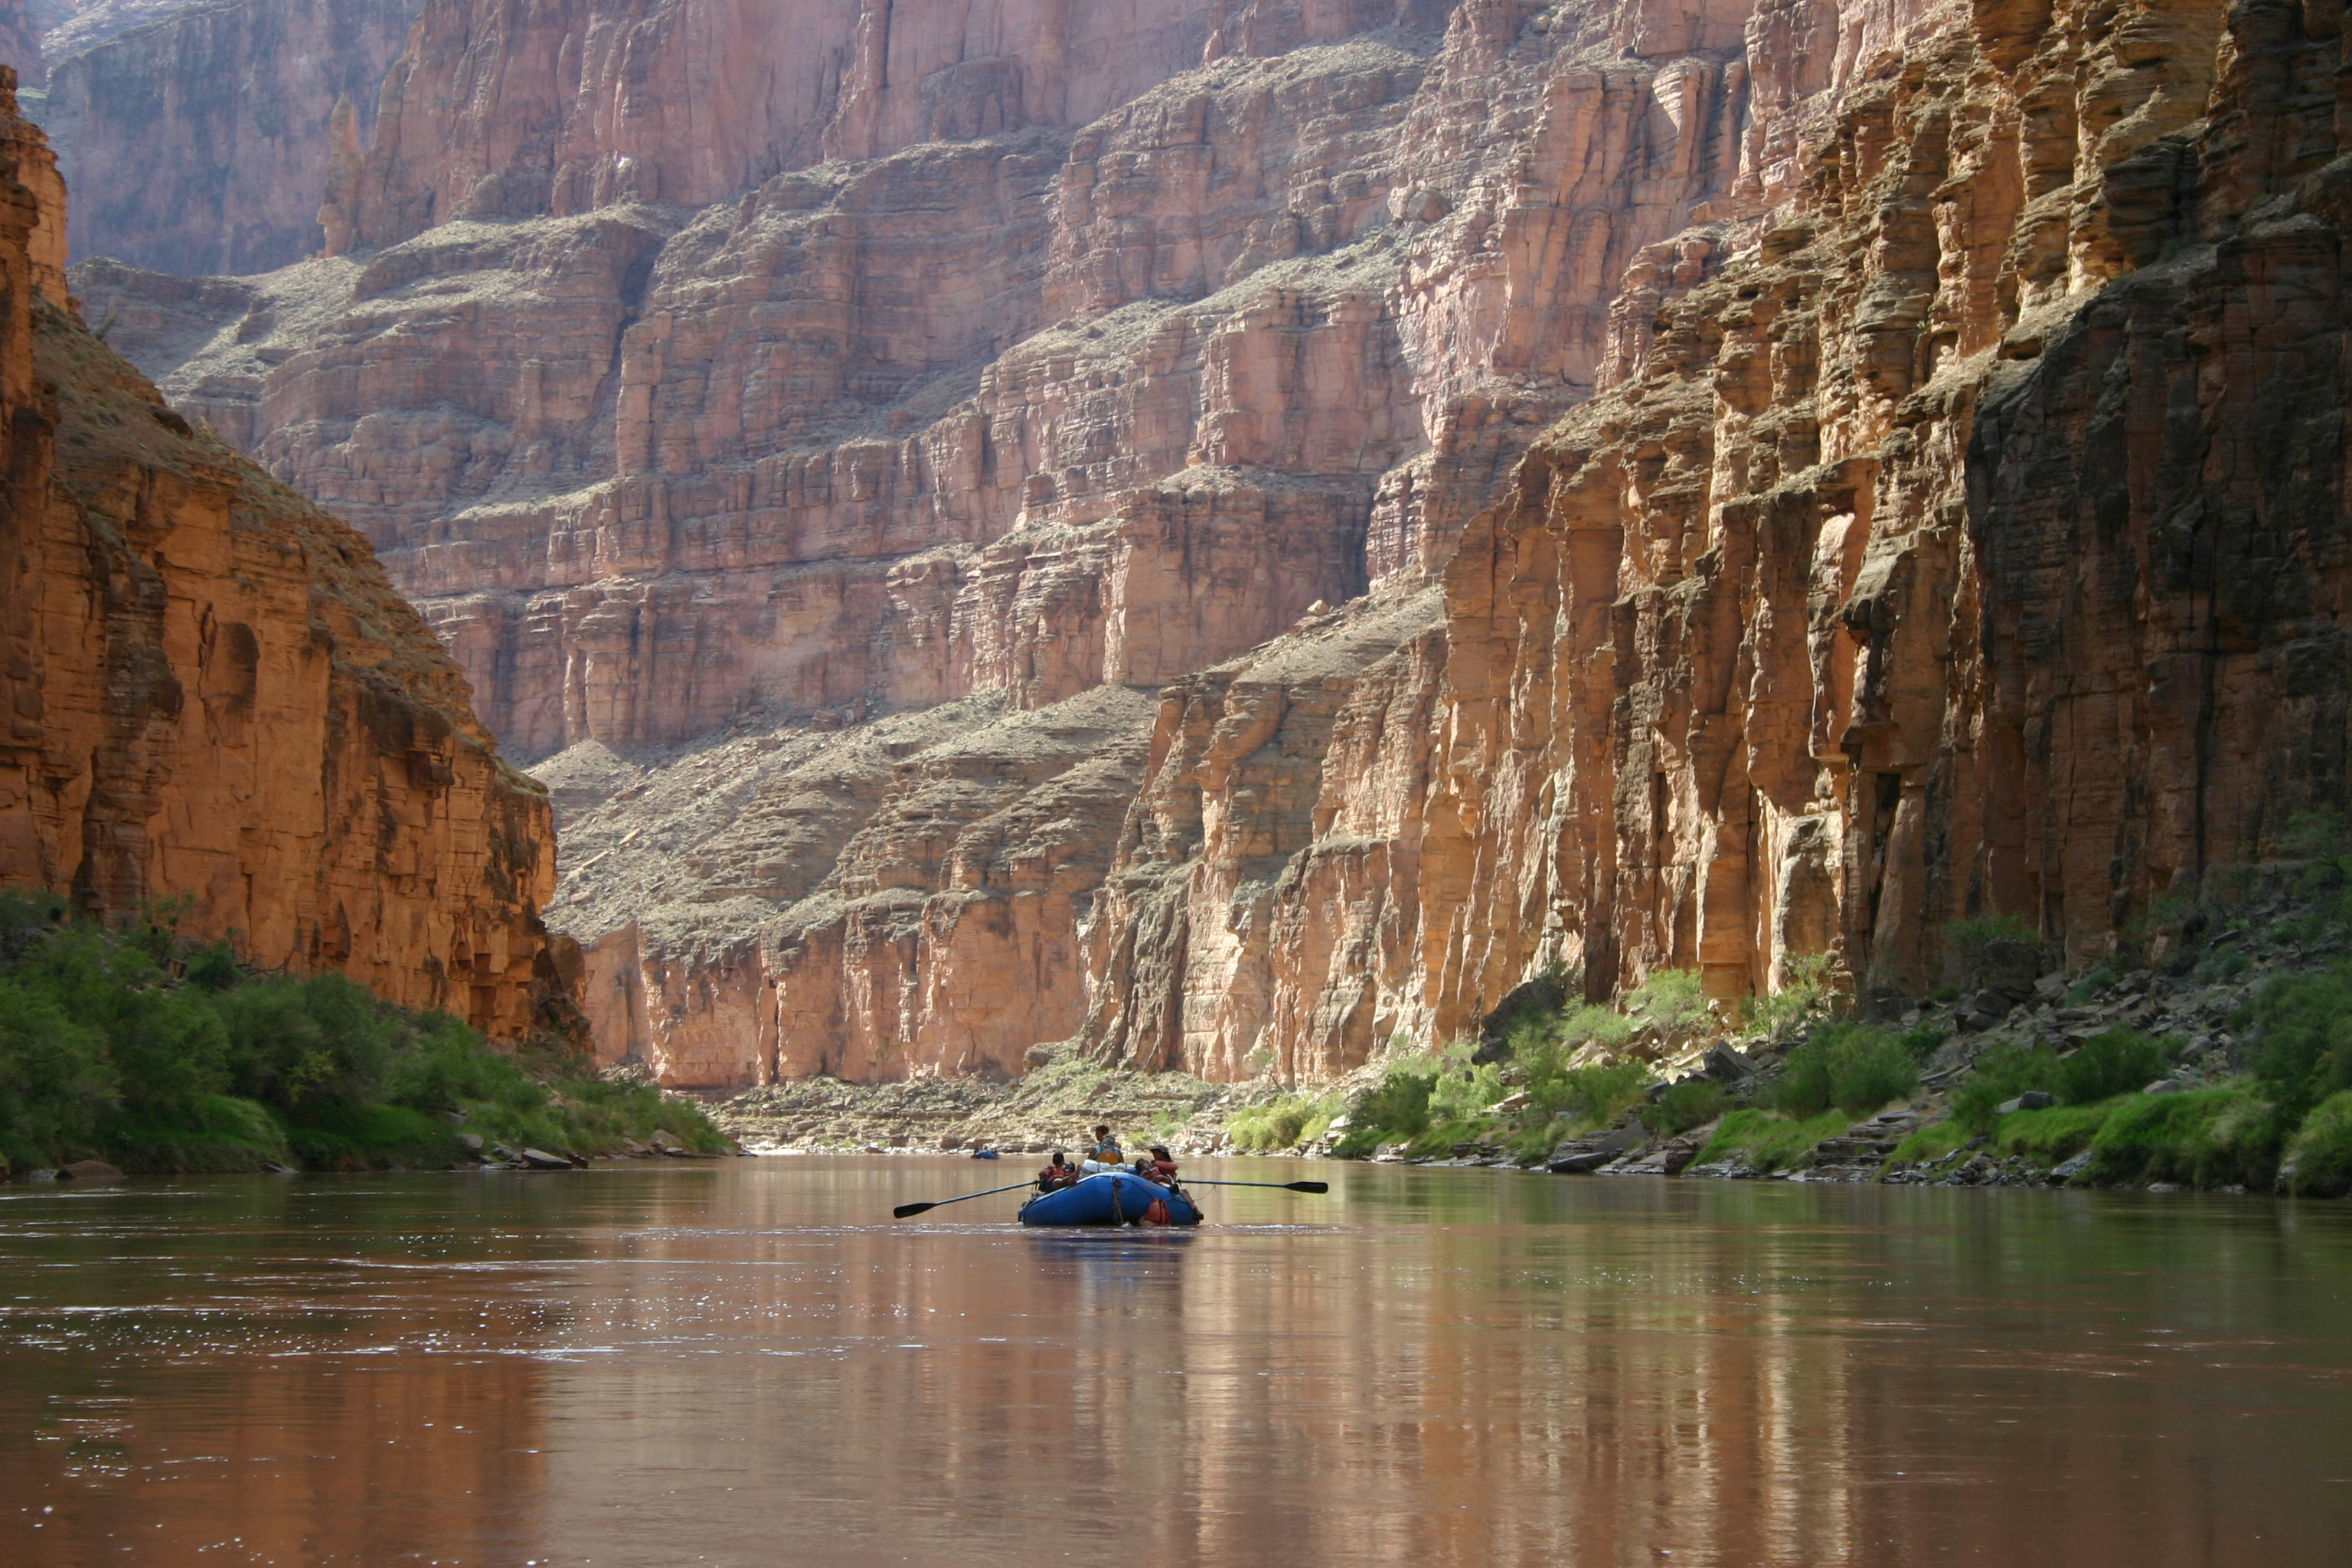 Image Credit : https://www.flickr.com/photos/grand_canyon_nps/